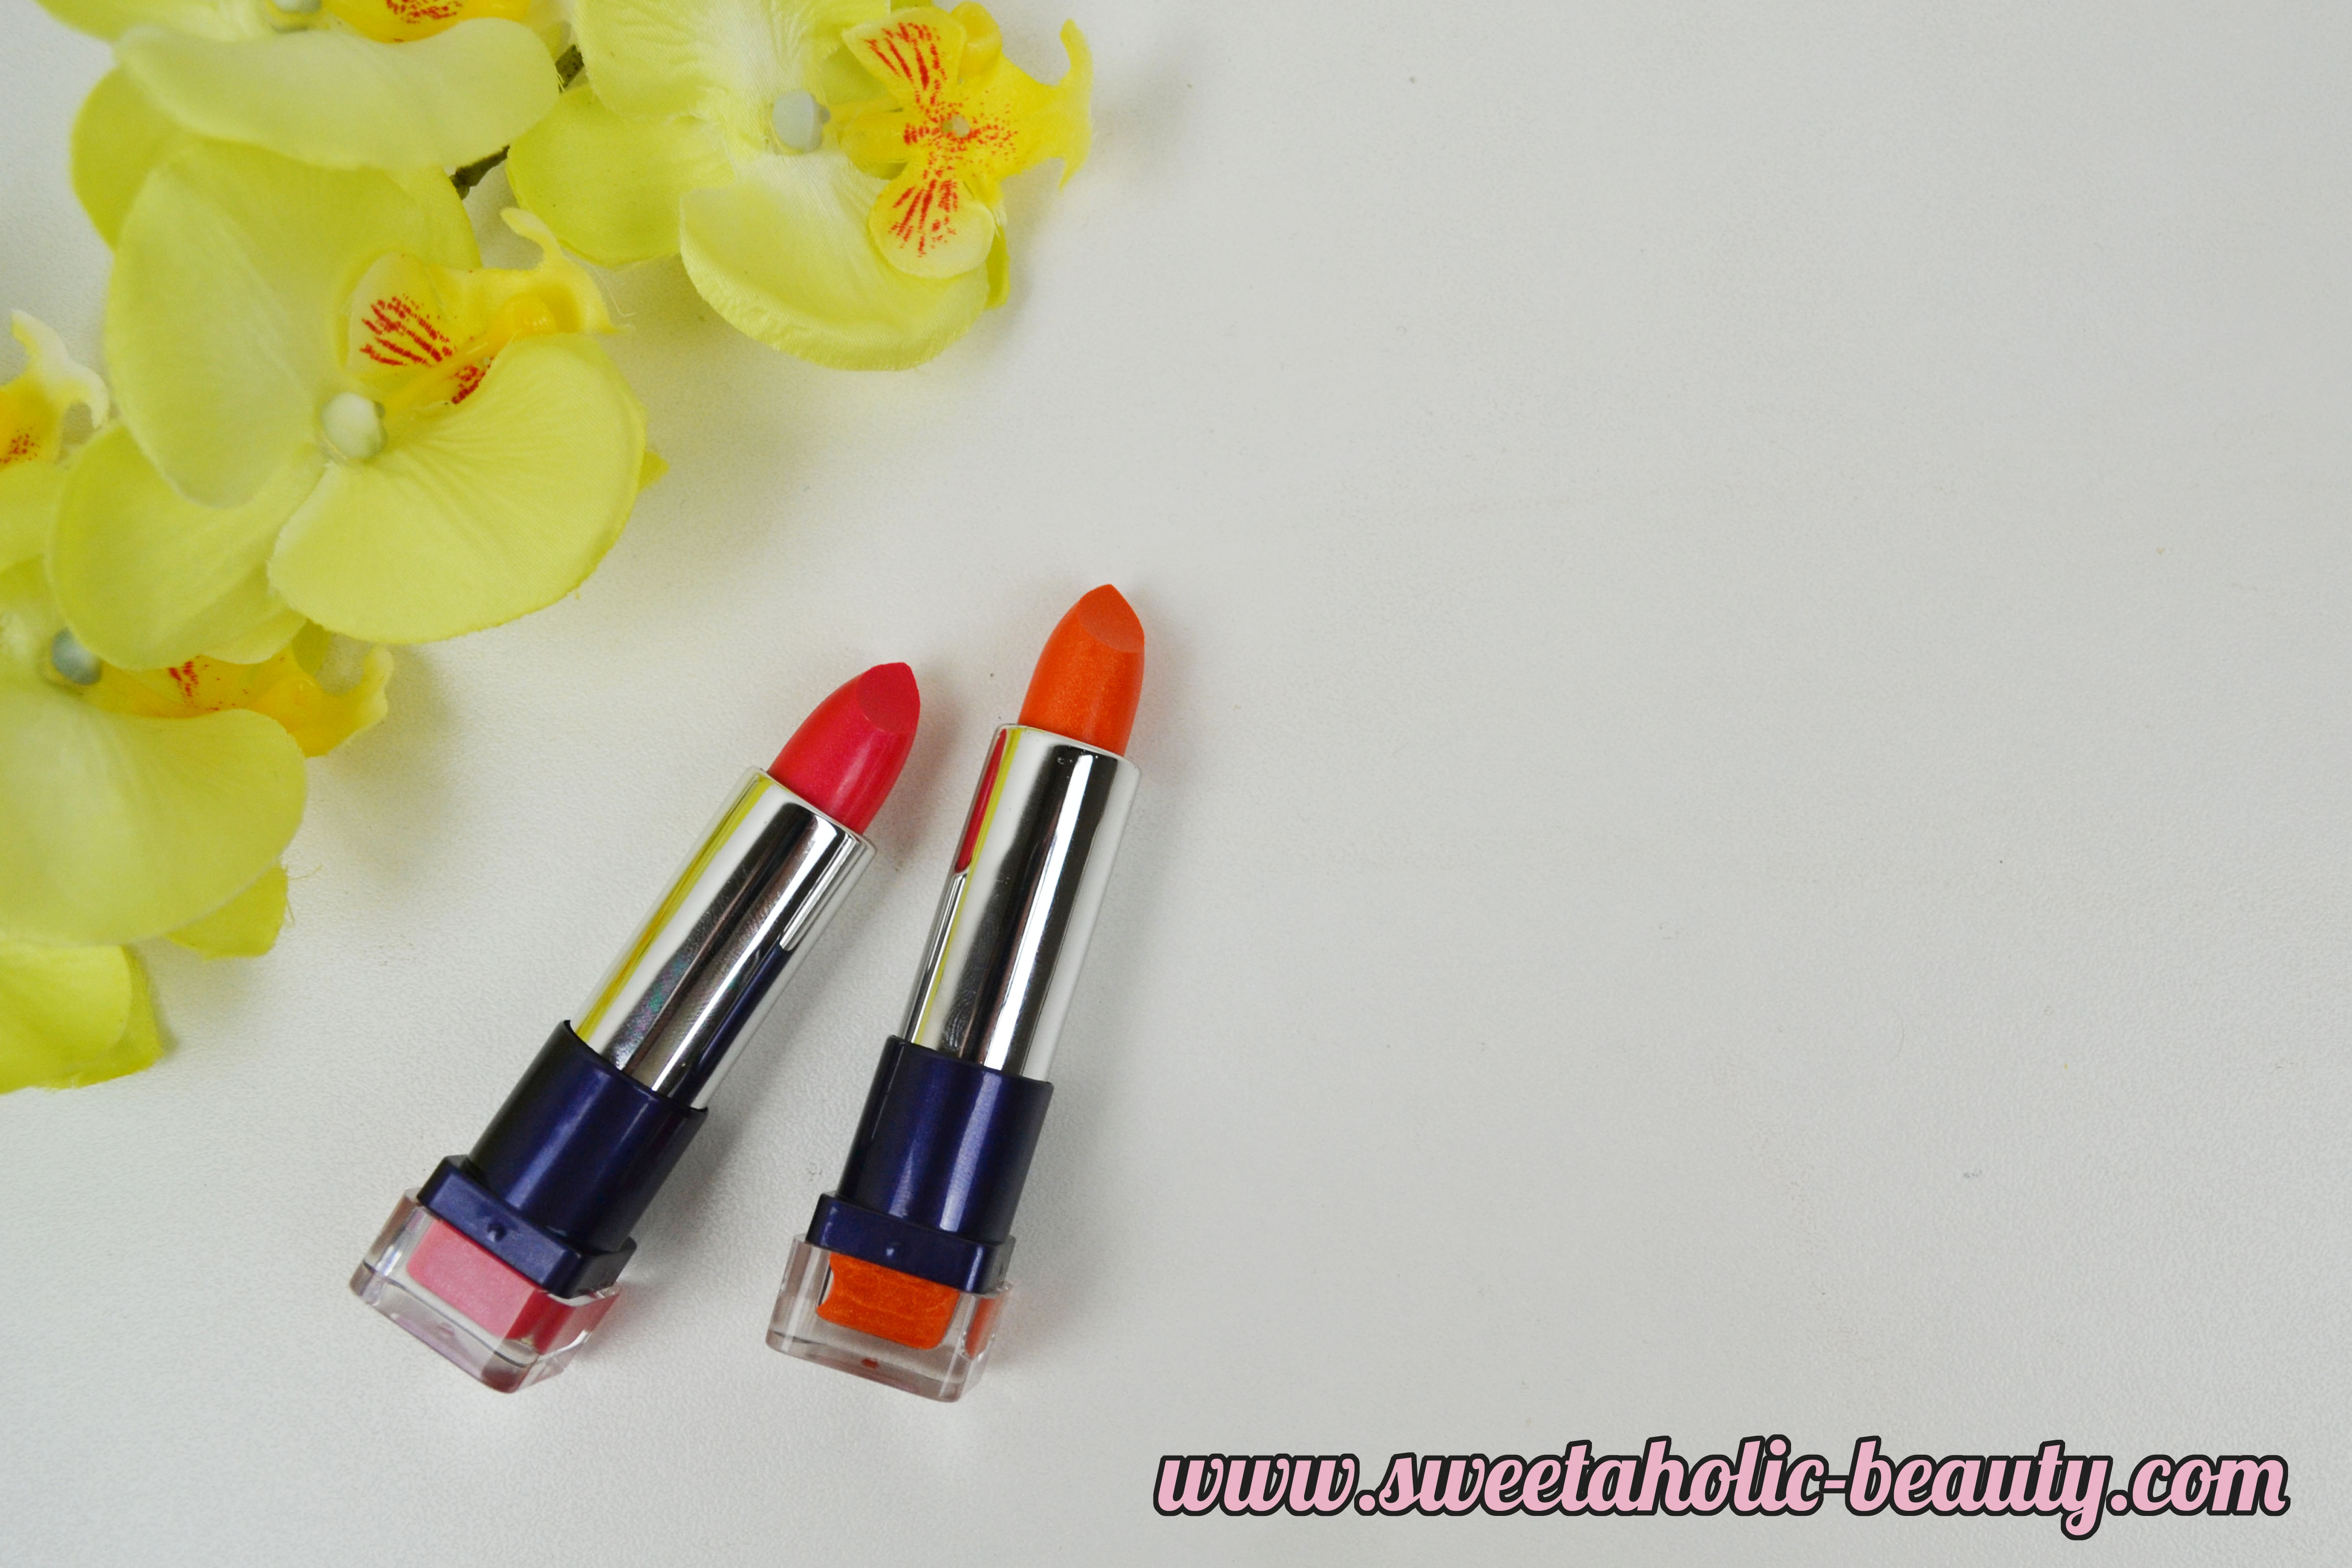 You by Sia Mineral Lipsticks Review & Swatches - Sweetaholic Beauty